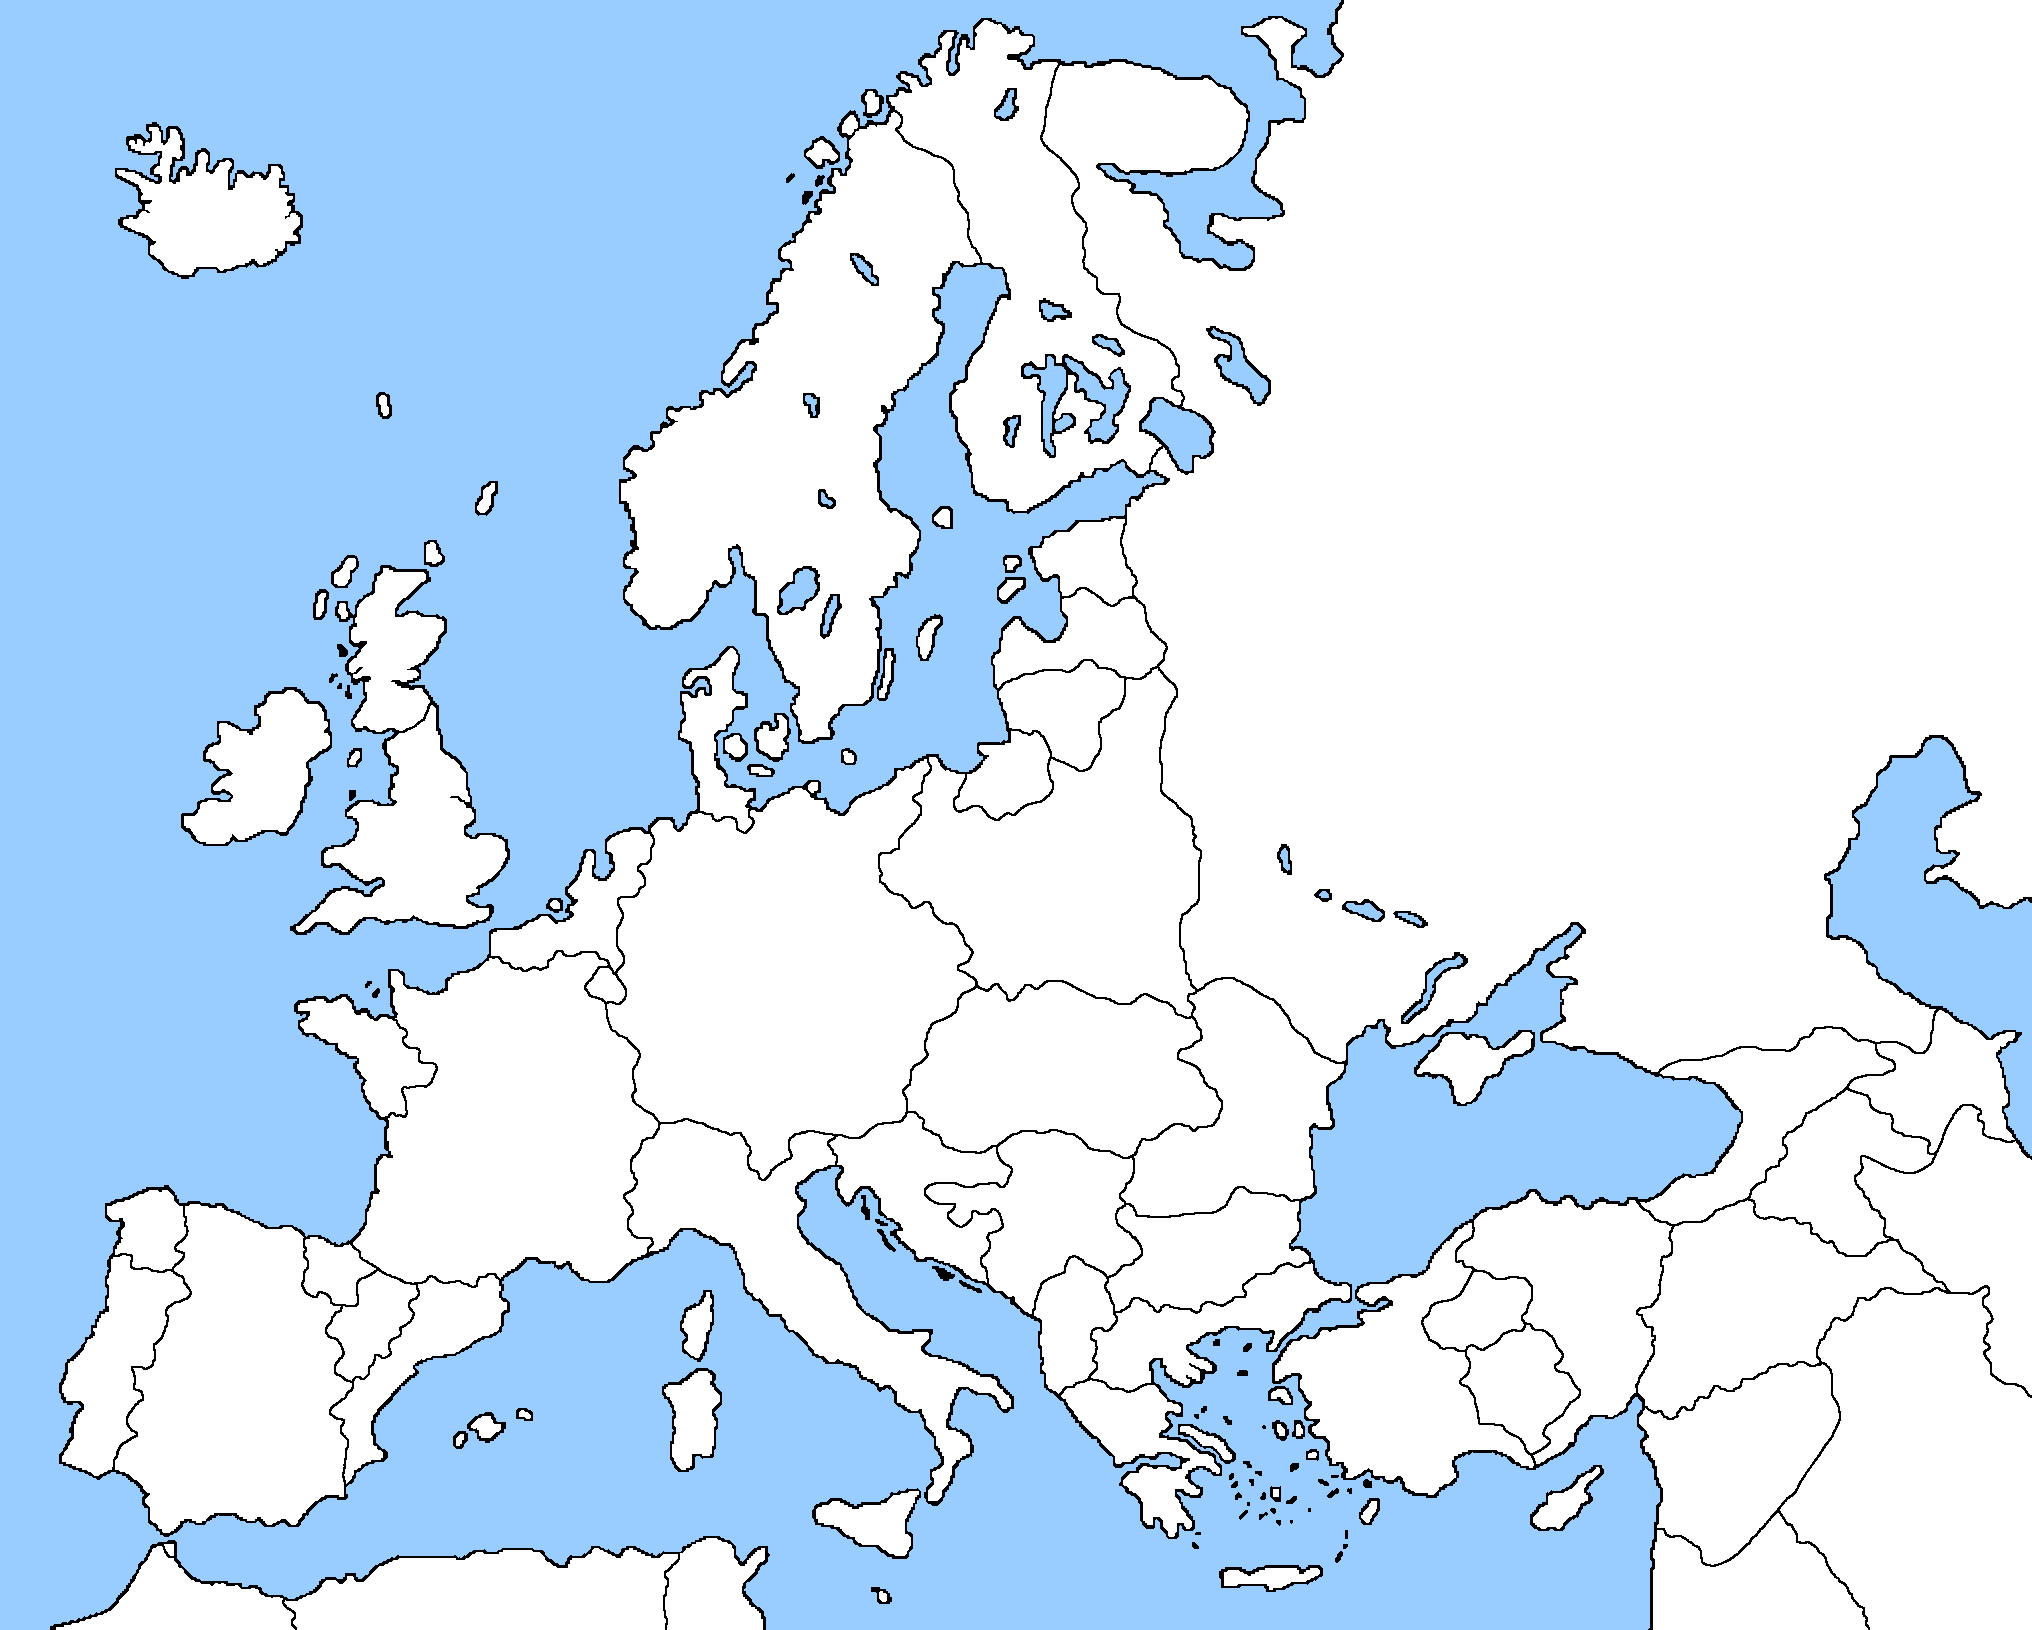 blank map of europe 1918 im outdatedpng